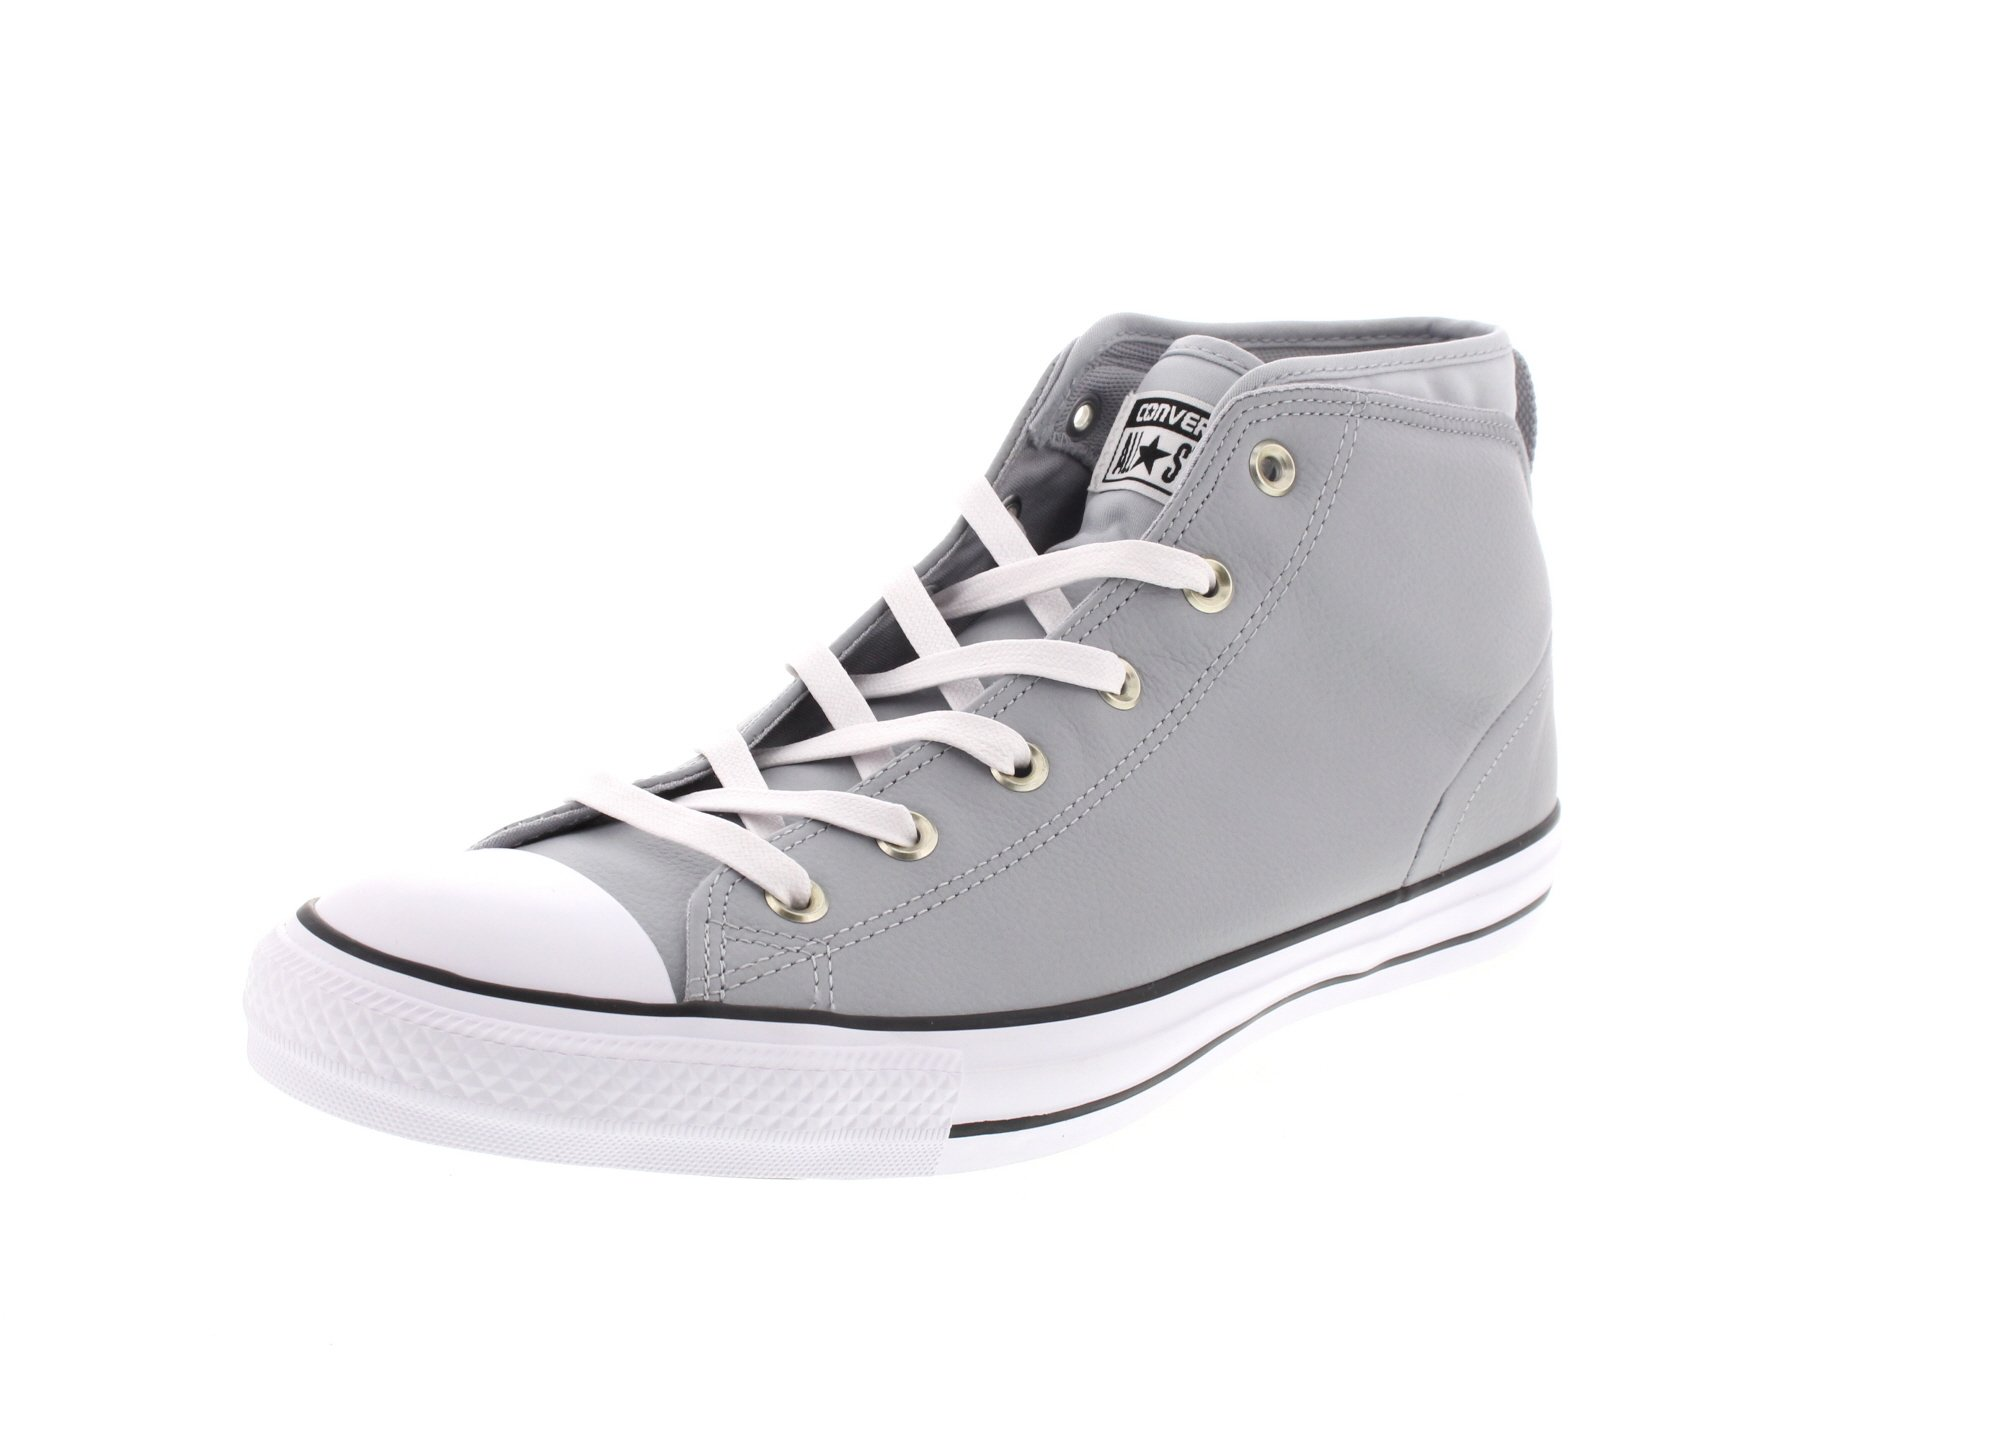 865dd5c788503 Galleon - Converse Chuck Taylor All Star Syde Street Leather High ...